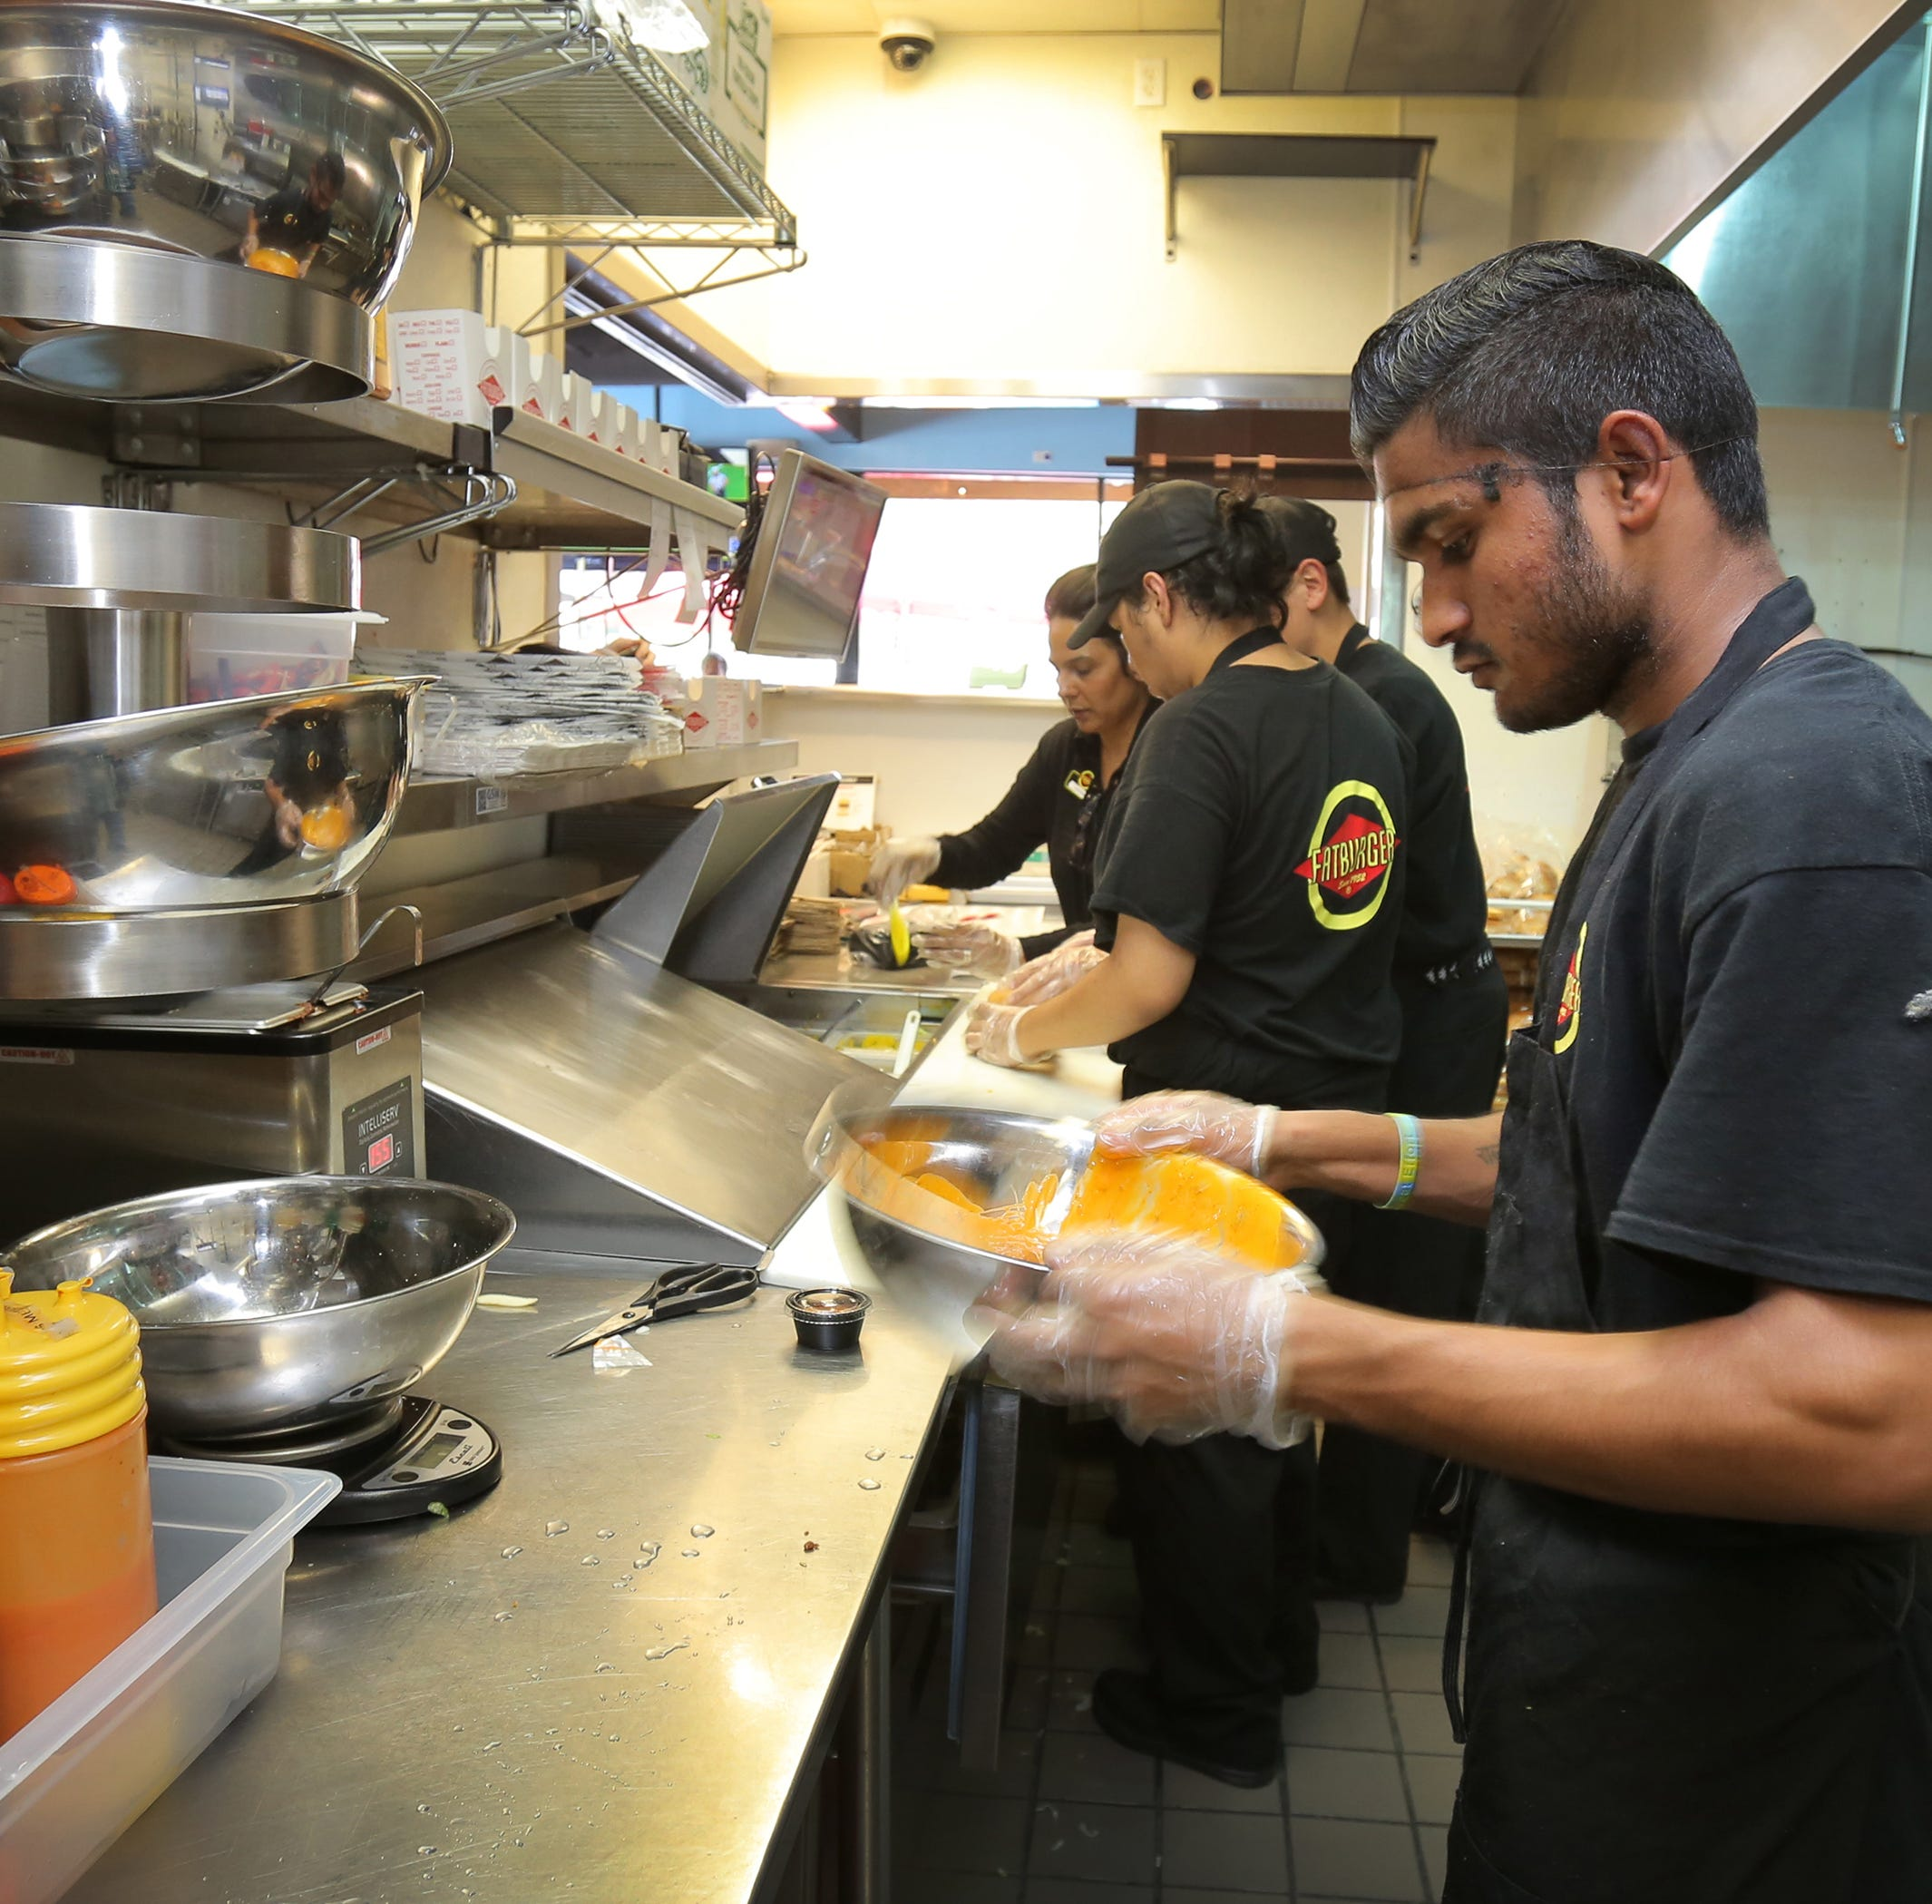 Raj Singh works on an order of chicken wings as Micheal Lopez, manager Jasbir Kaur and Antonio Ortiz prepare hamburgers at the Fatburger & Buffalo's Express that recently opened in Thousand Oaks.